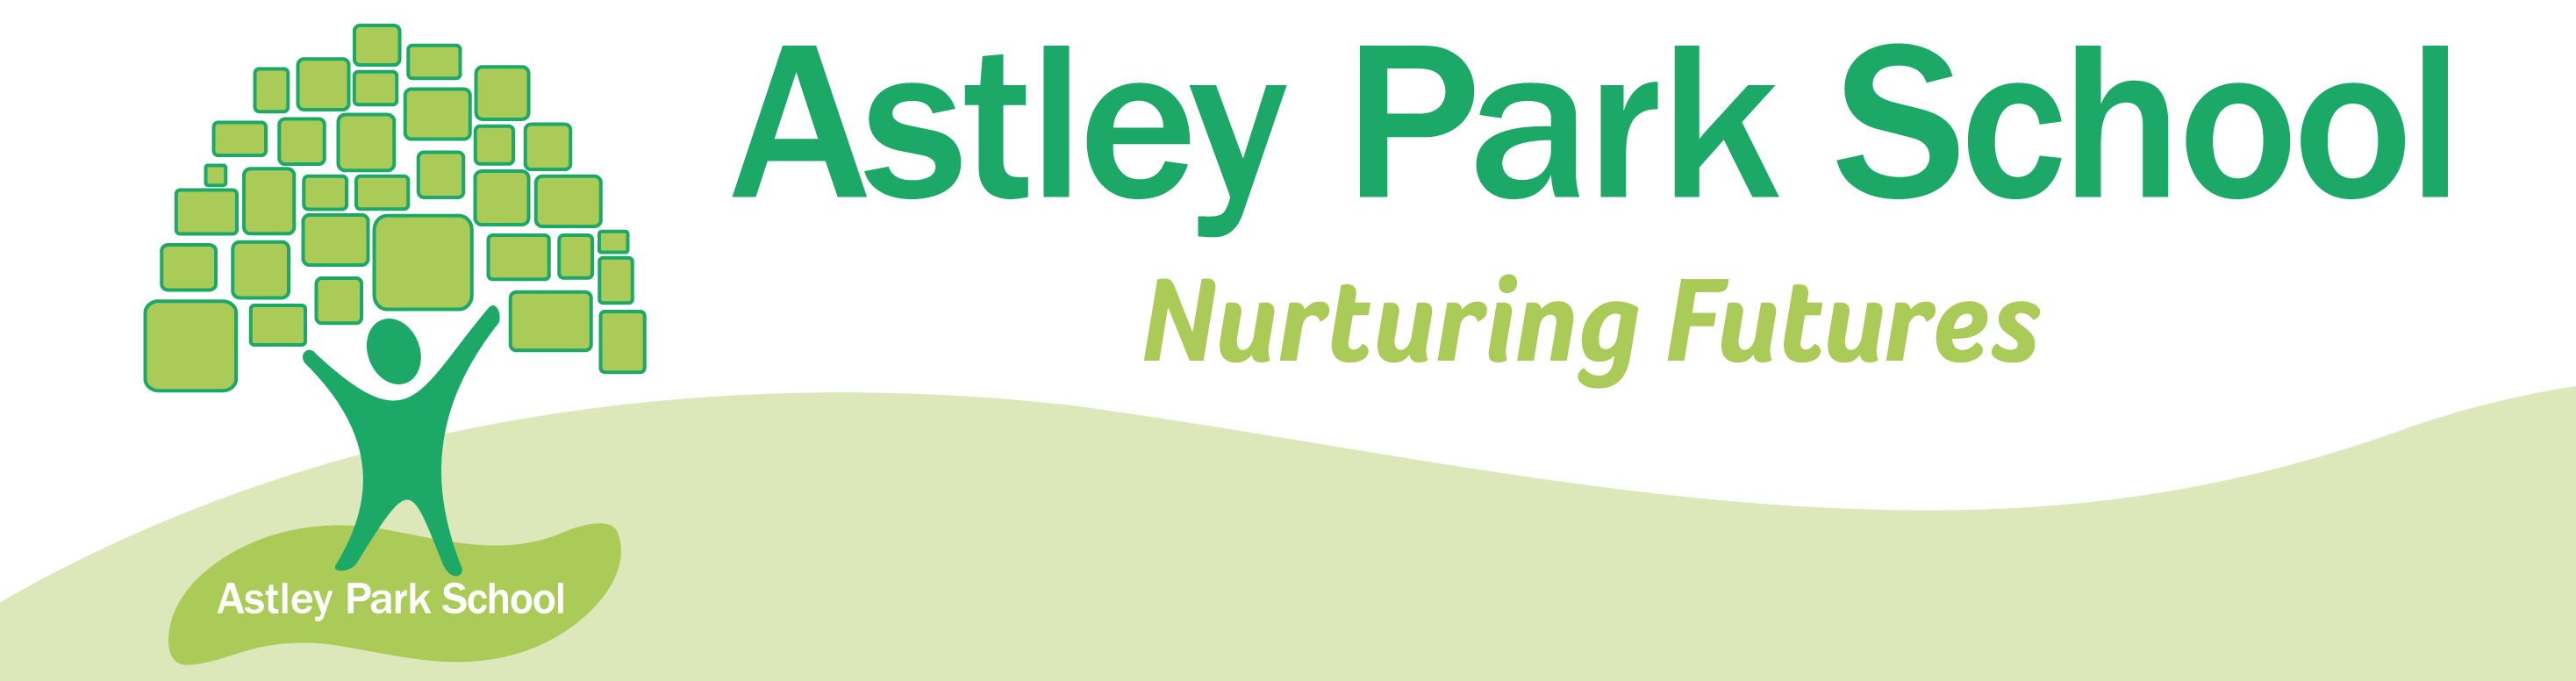 Code of Conducts | Astley Park School